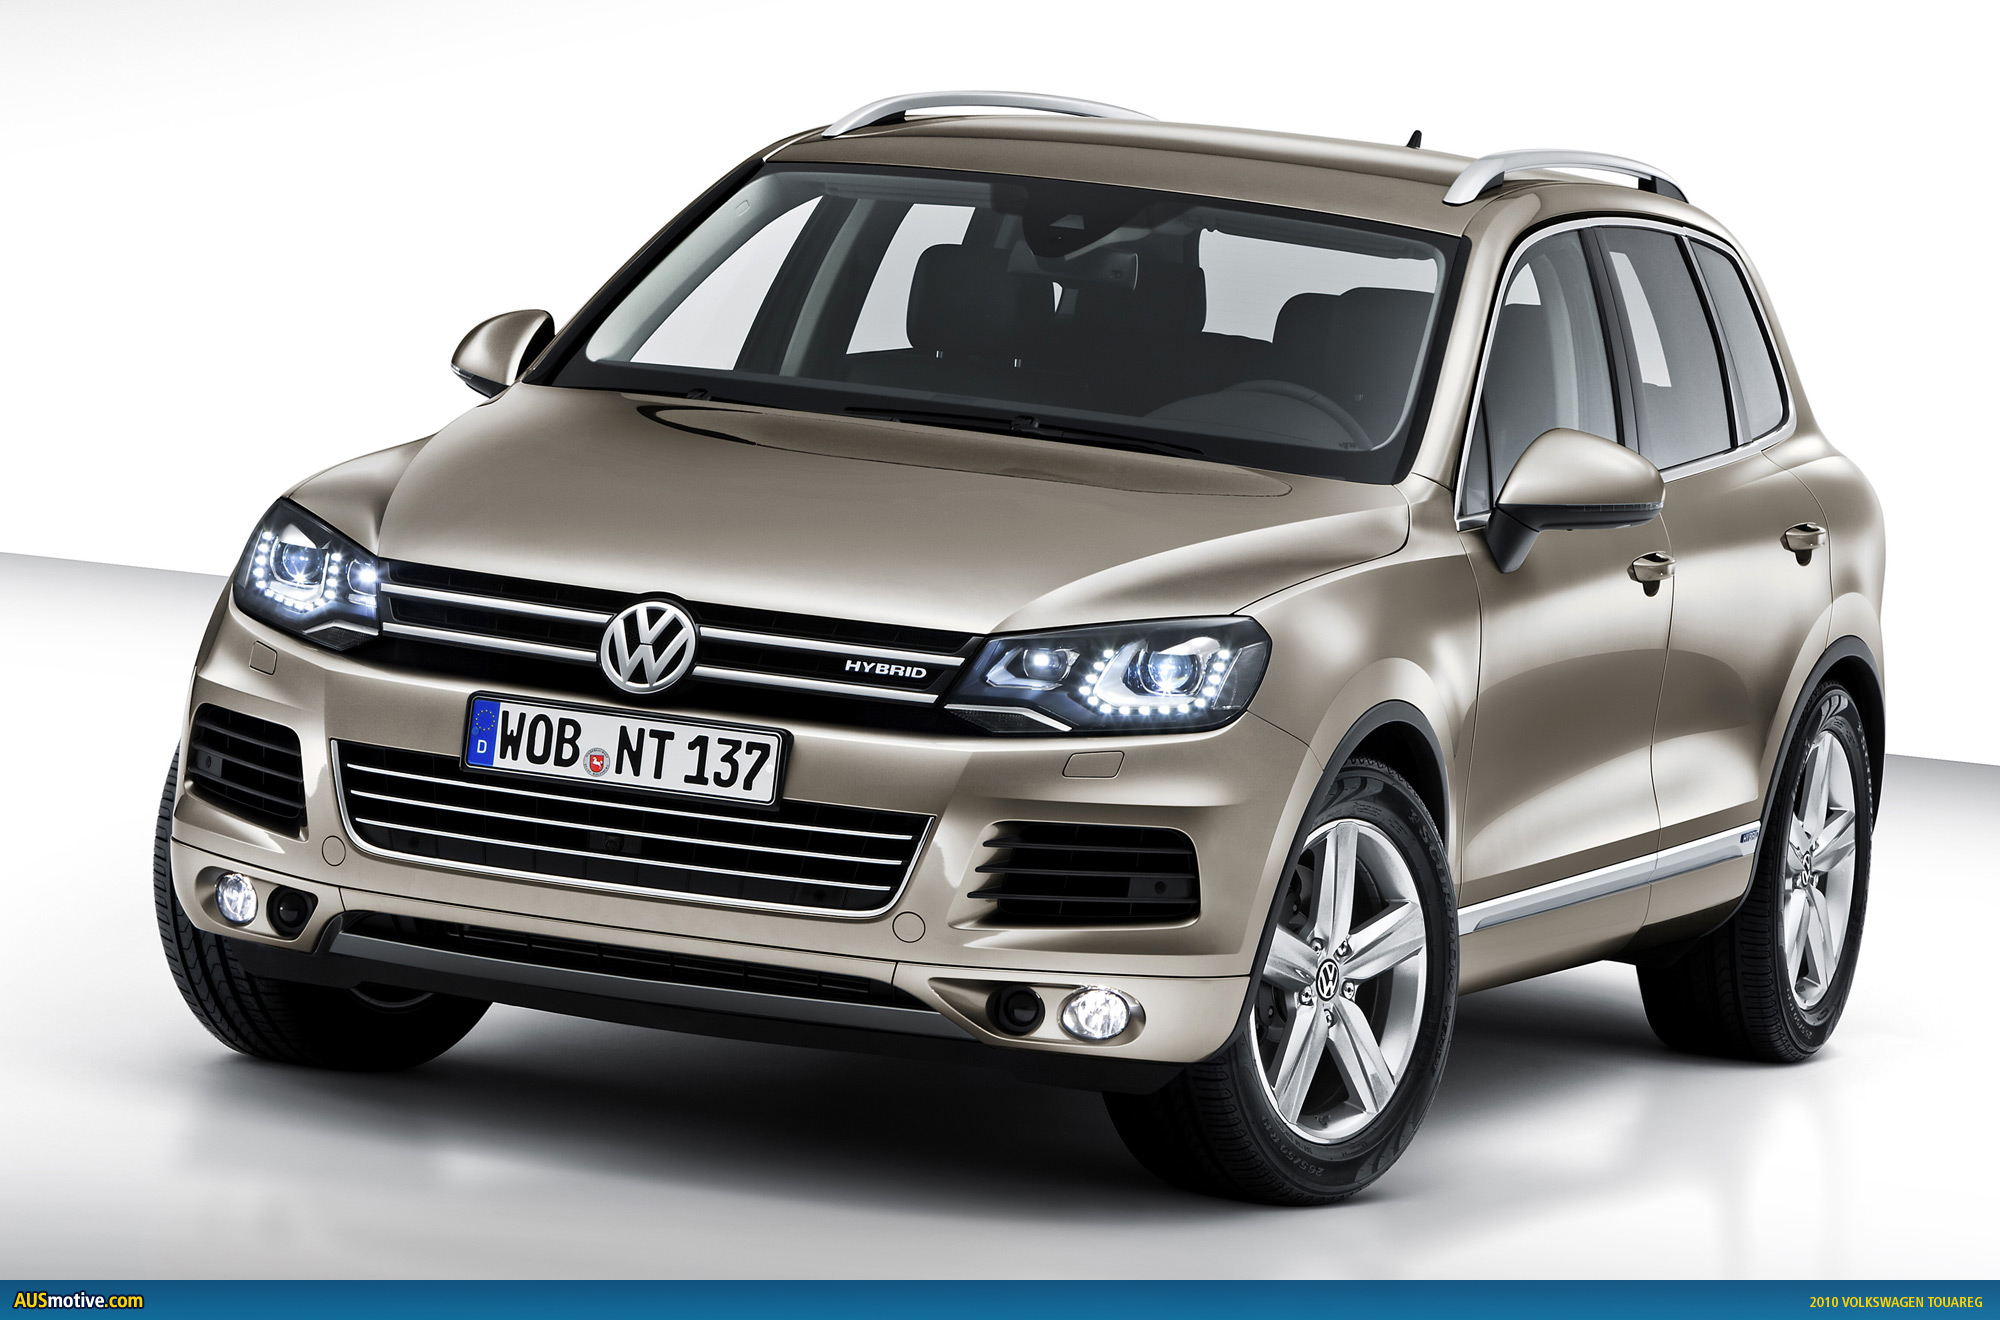 Volkswagen Touareg due in Australia next year Free Download Image Of